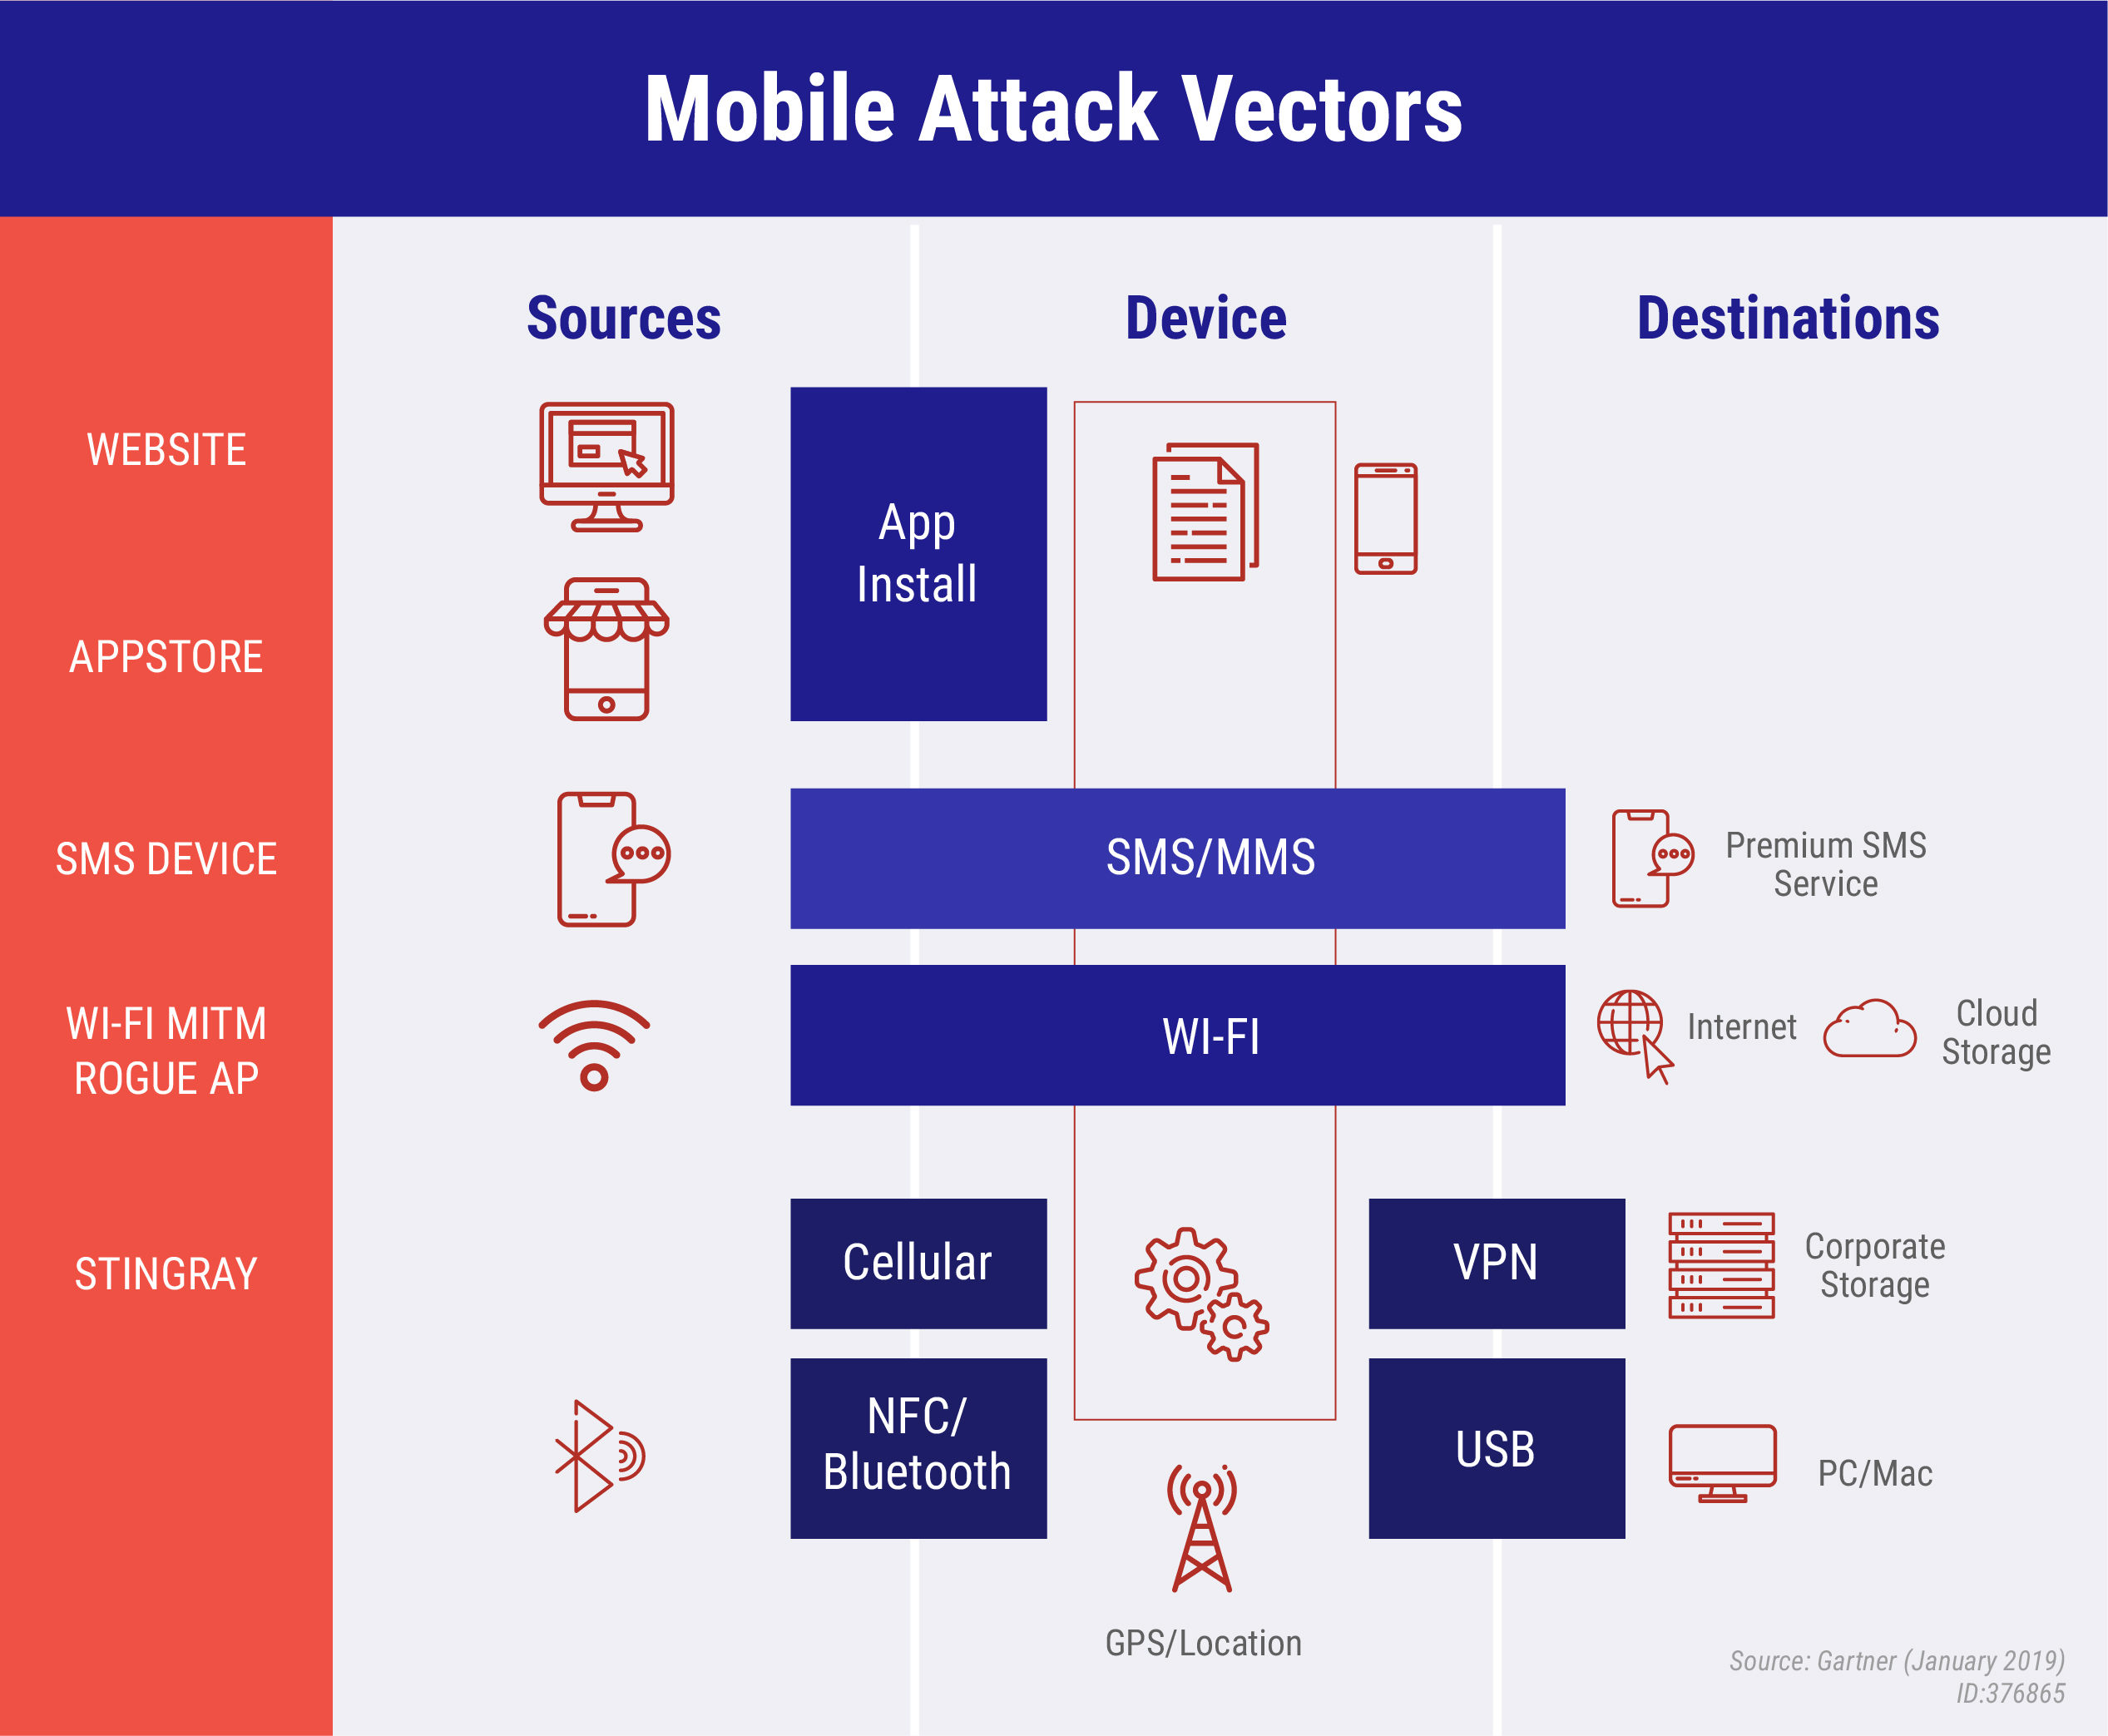 Mobile Attack Vectors